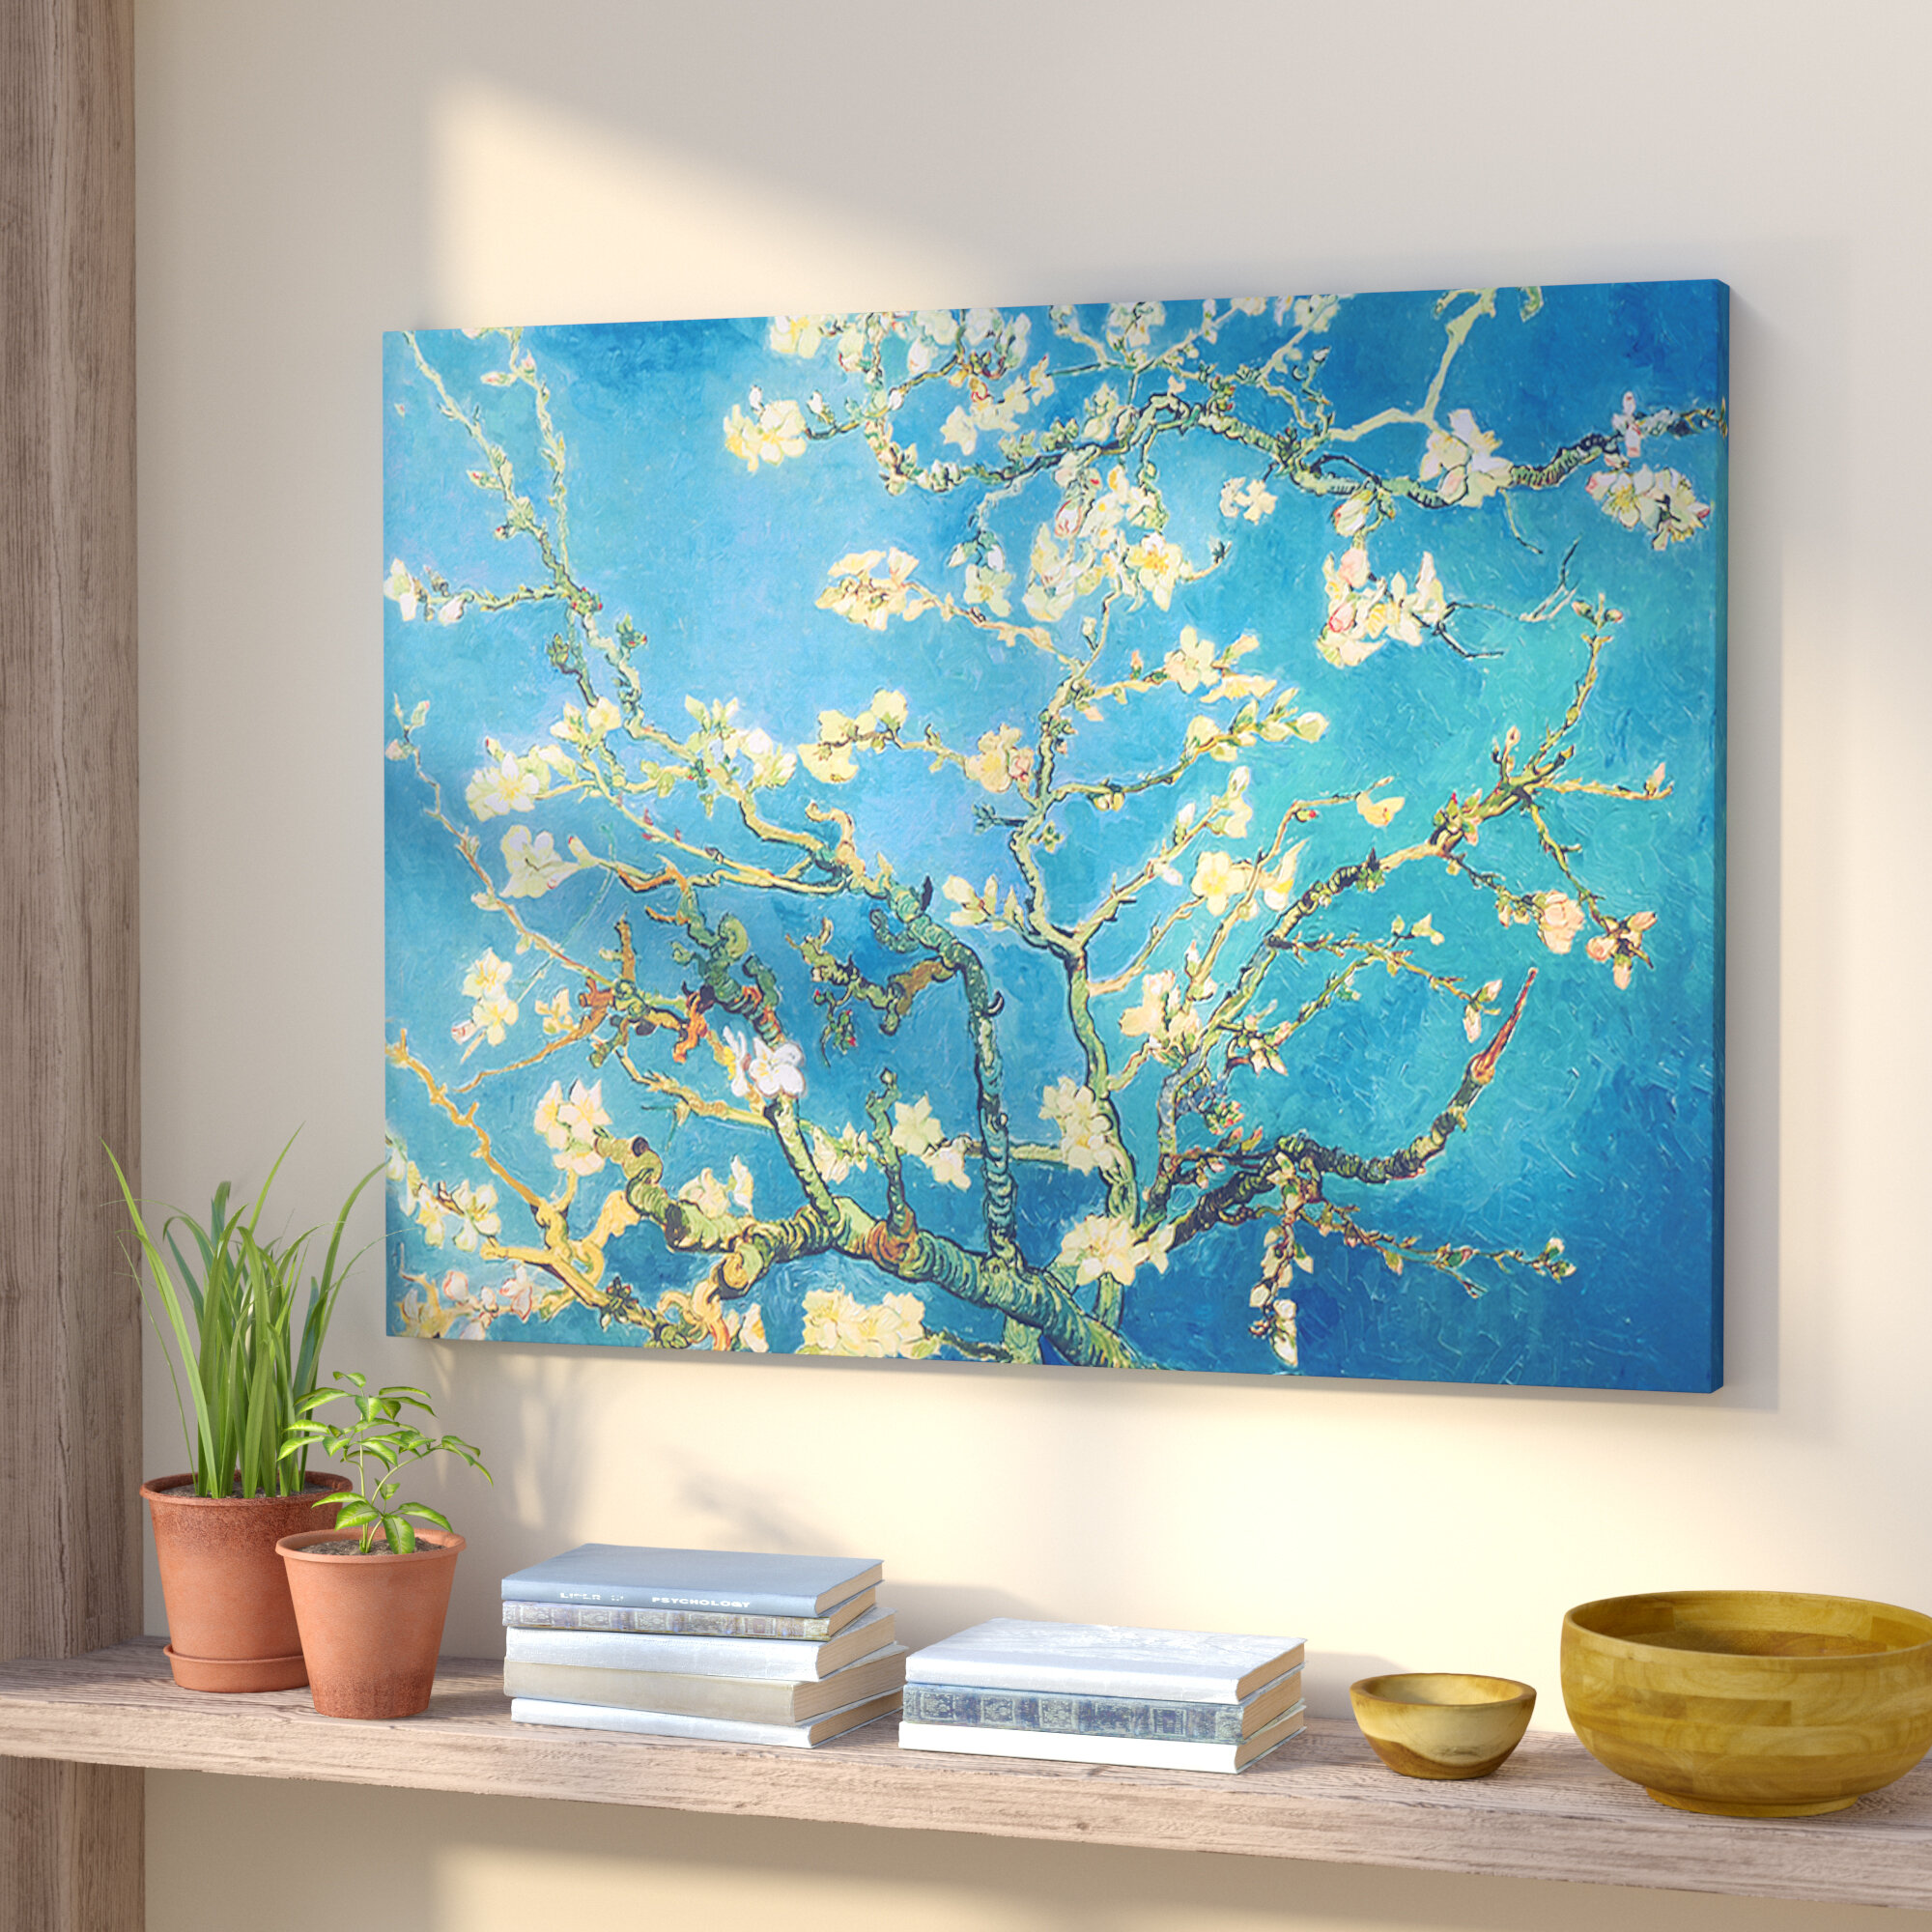 15a5c7001eb World Menagerie  Almond Blossom  by Vincent Van Gogh on Canvas   Reviews